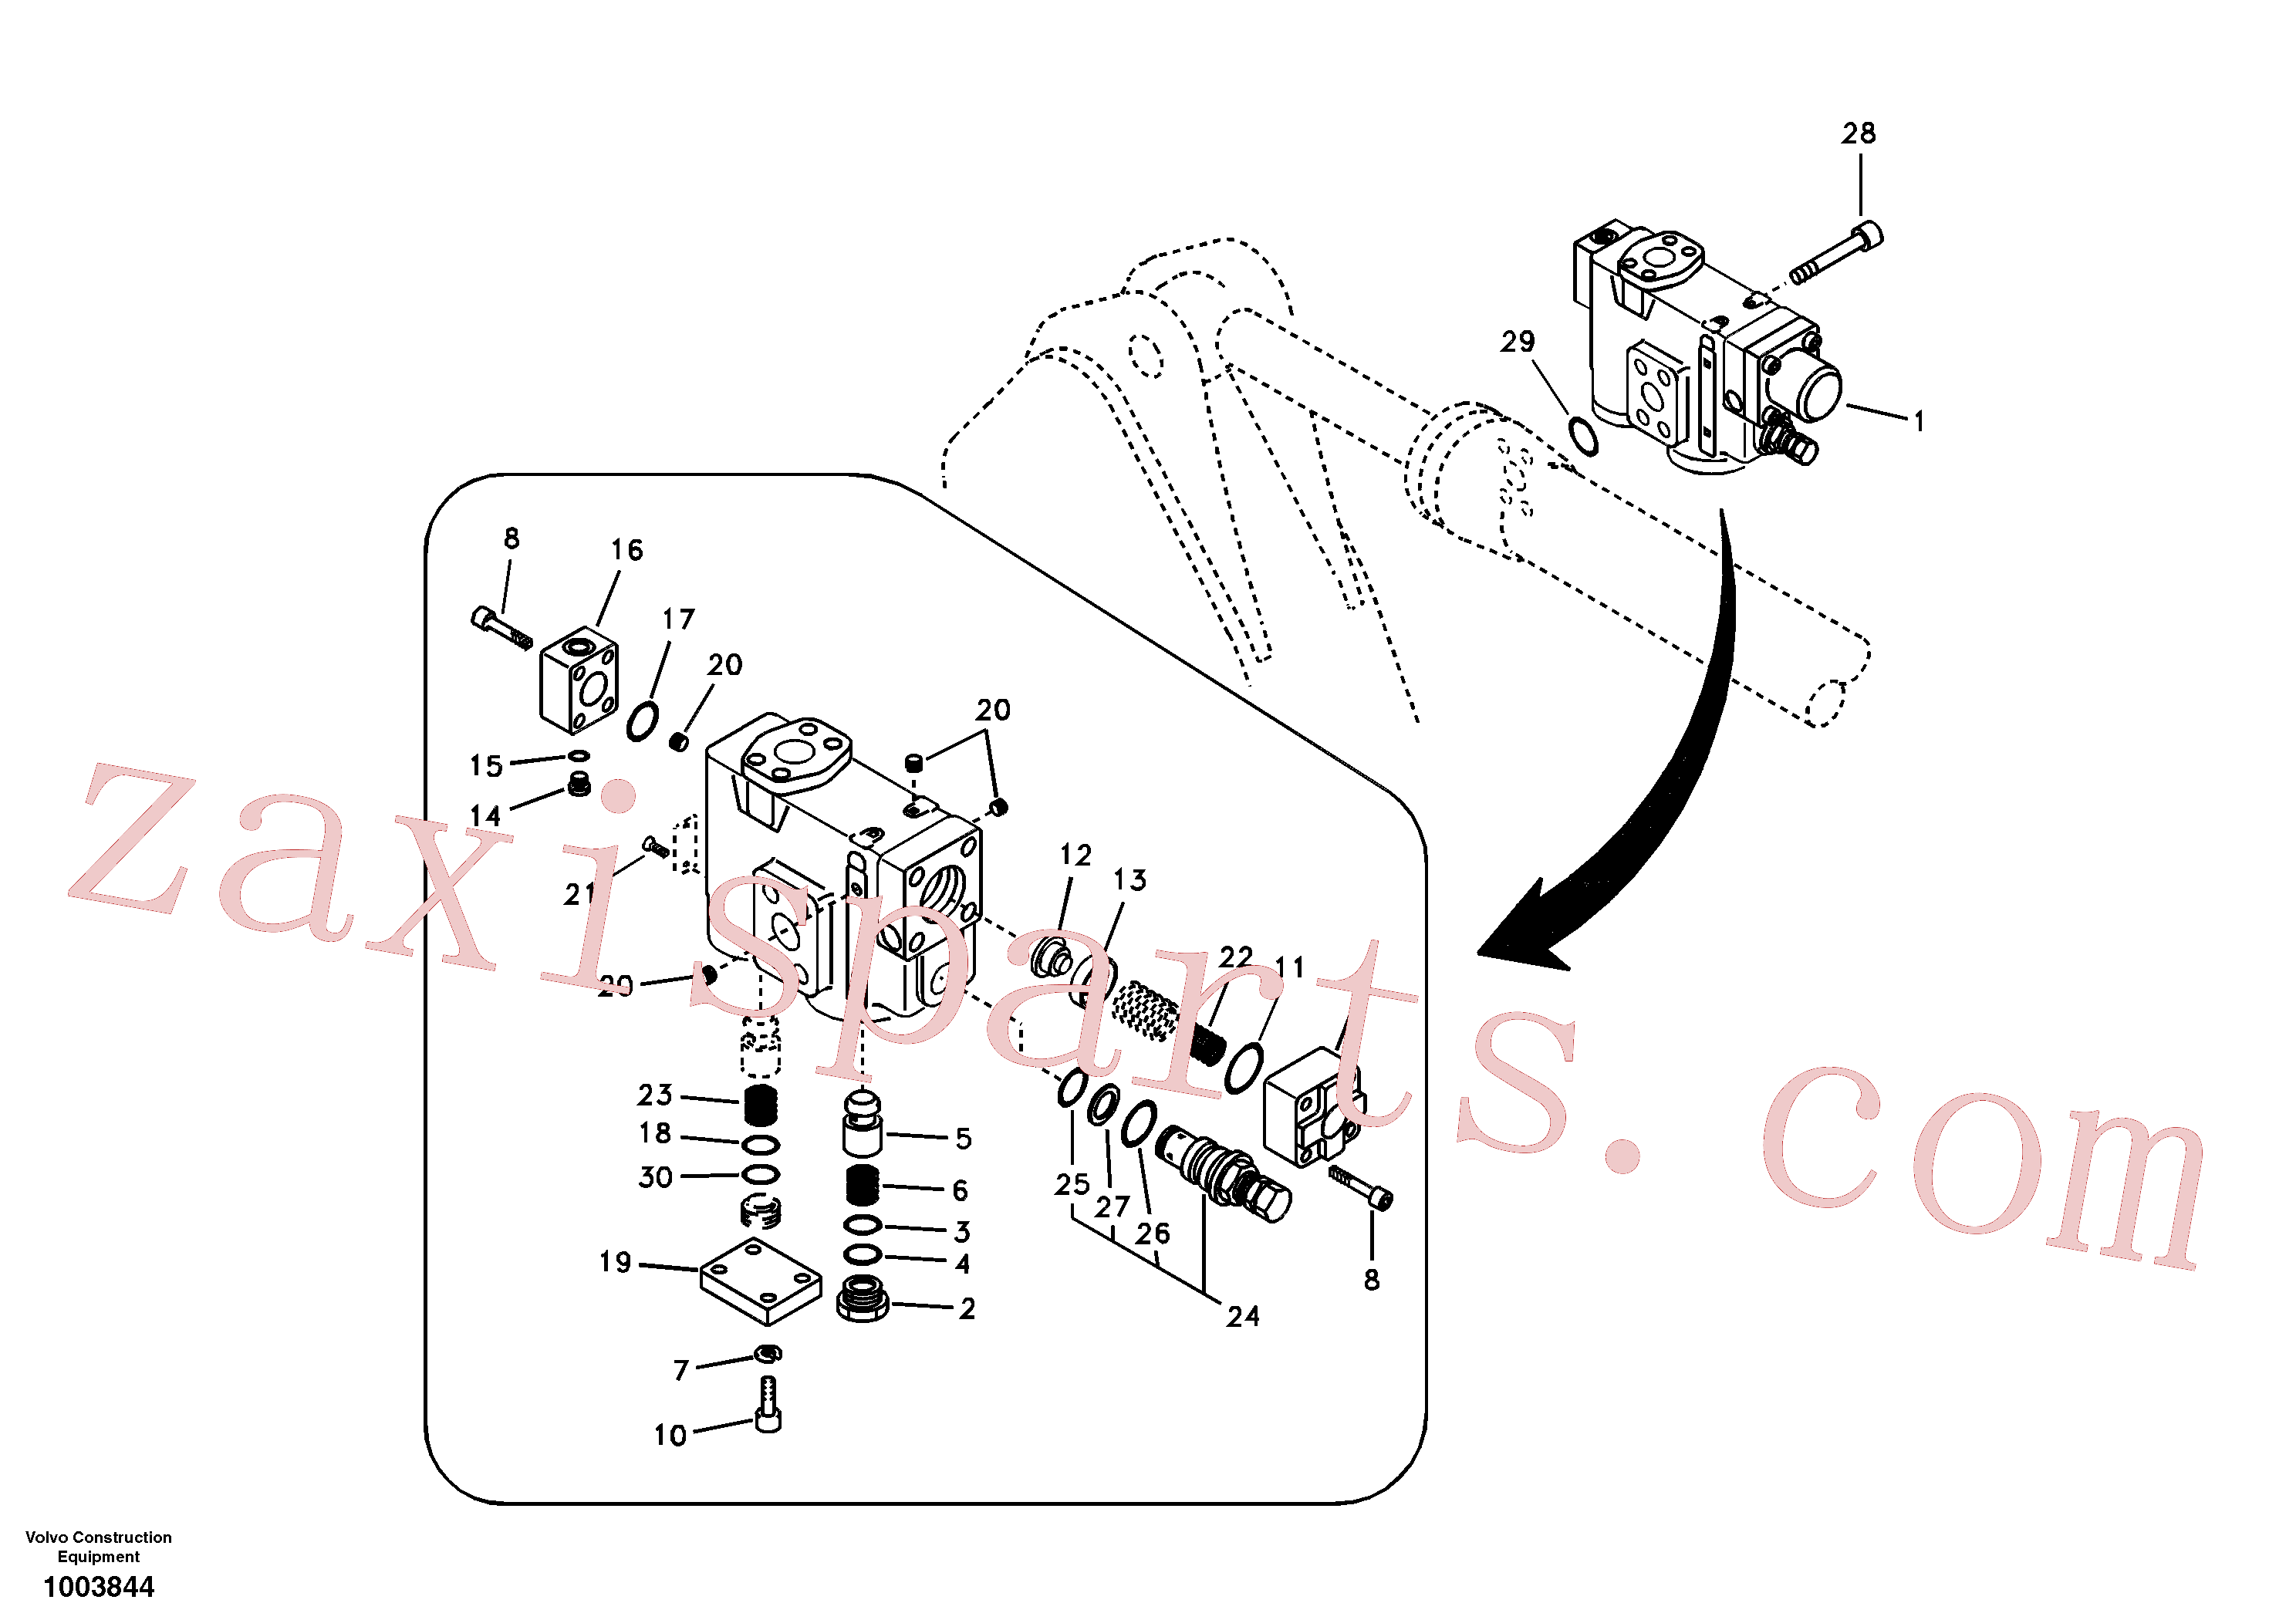 SA9016-20807 for Volvo Working hydraulic, dipper arm rupture valve mount.(1003844 assembly)